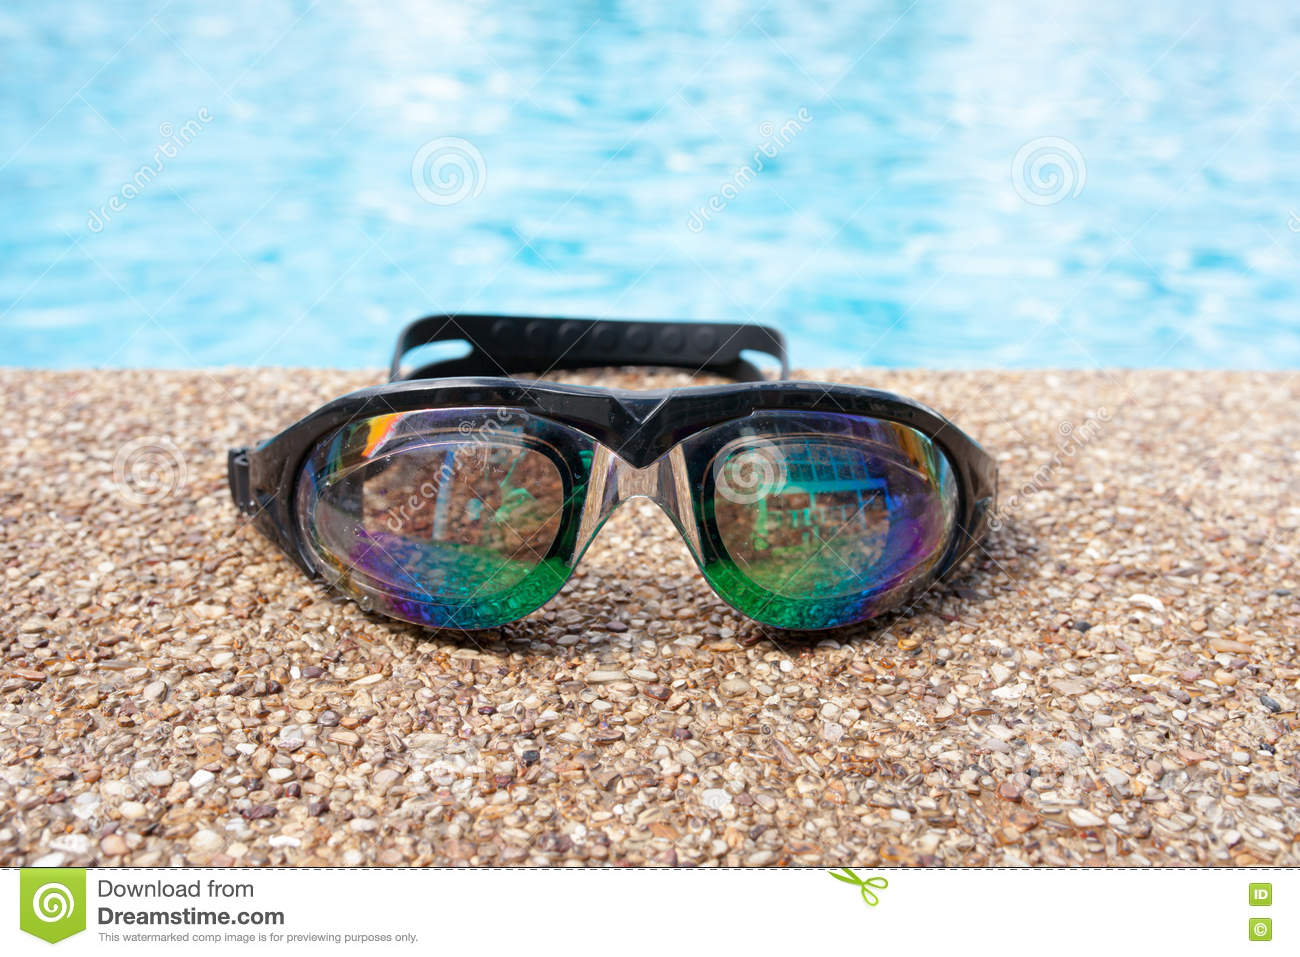 Glasses For Swimming On A Cement Floor With Small Stone Near Swimming Pool Stock Photo Image